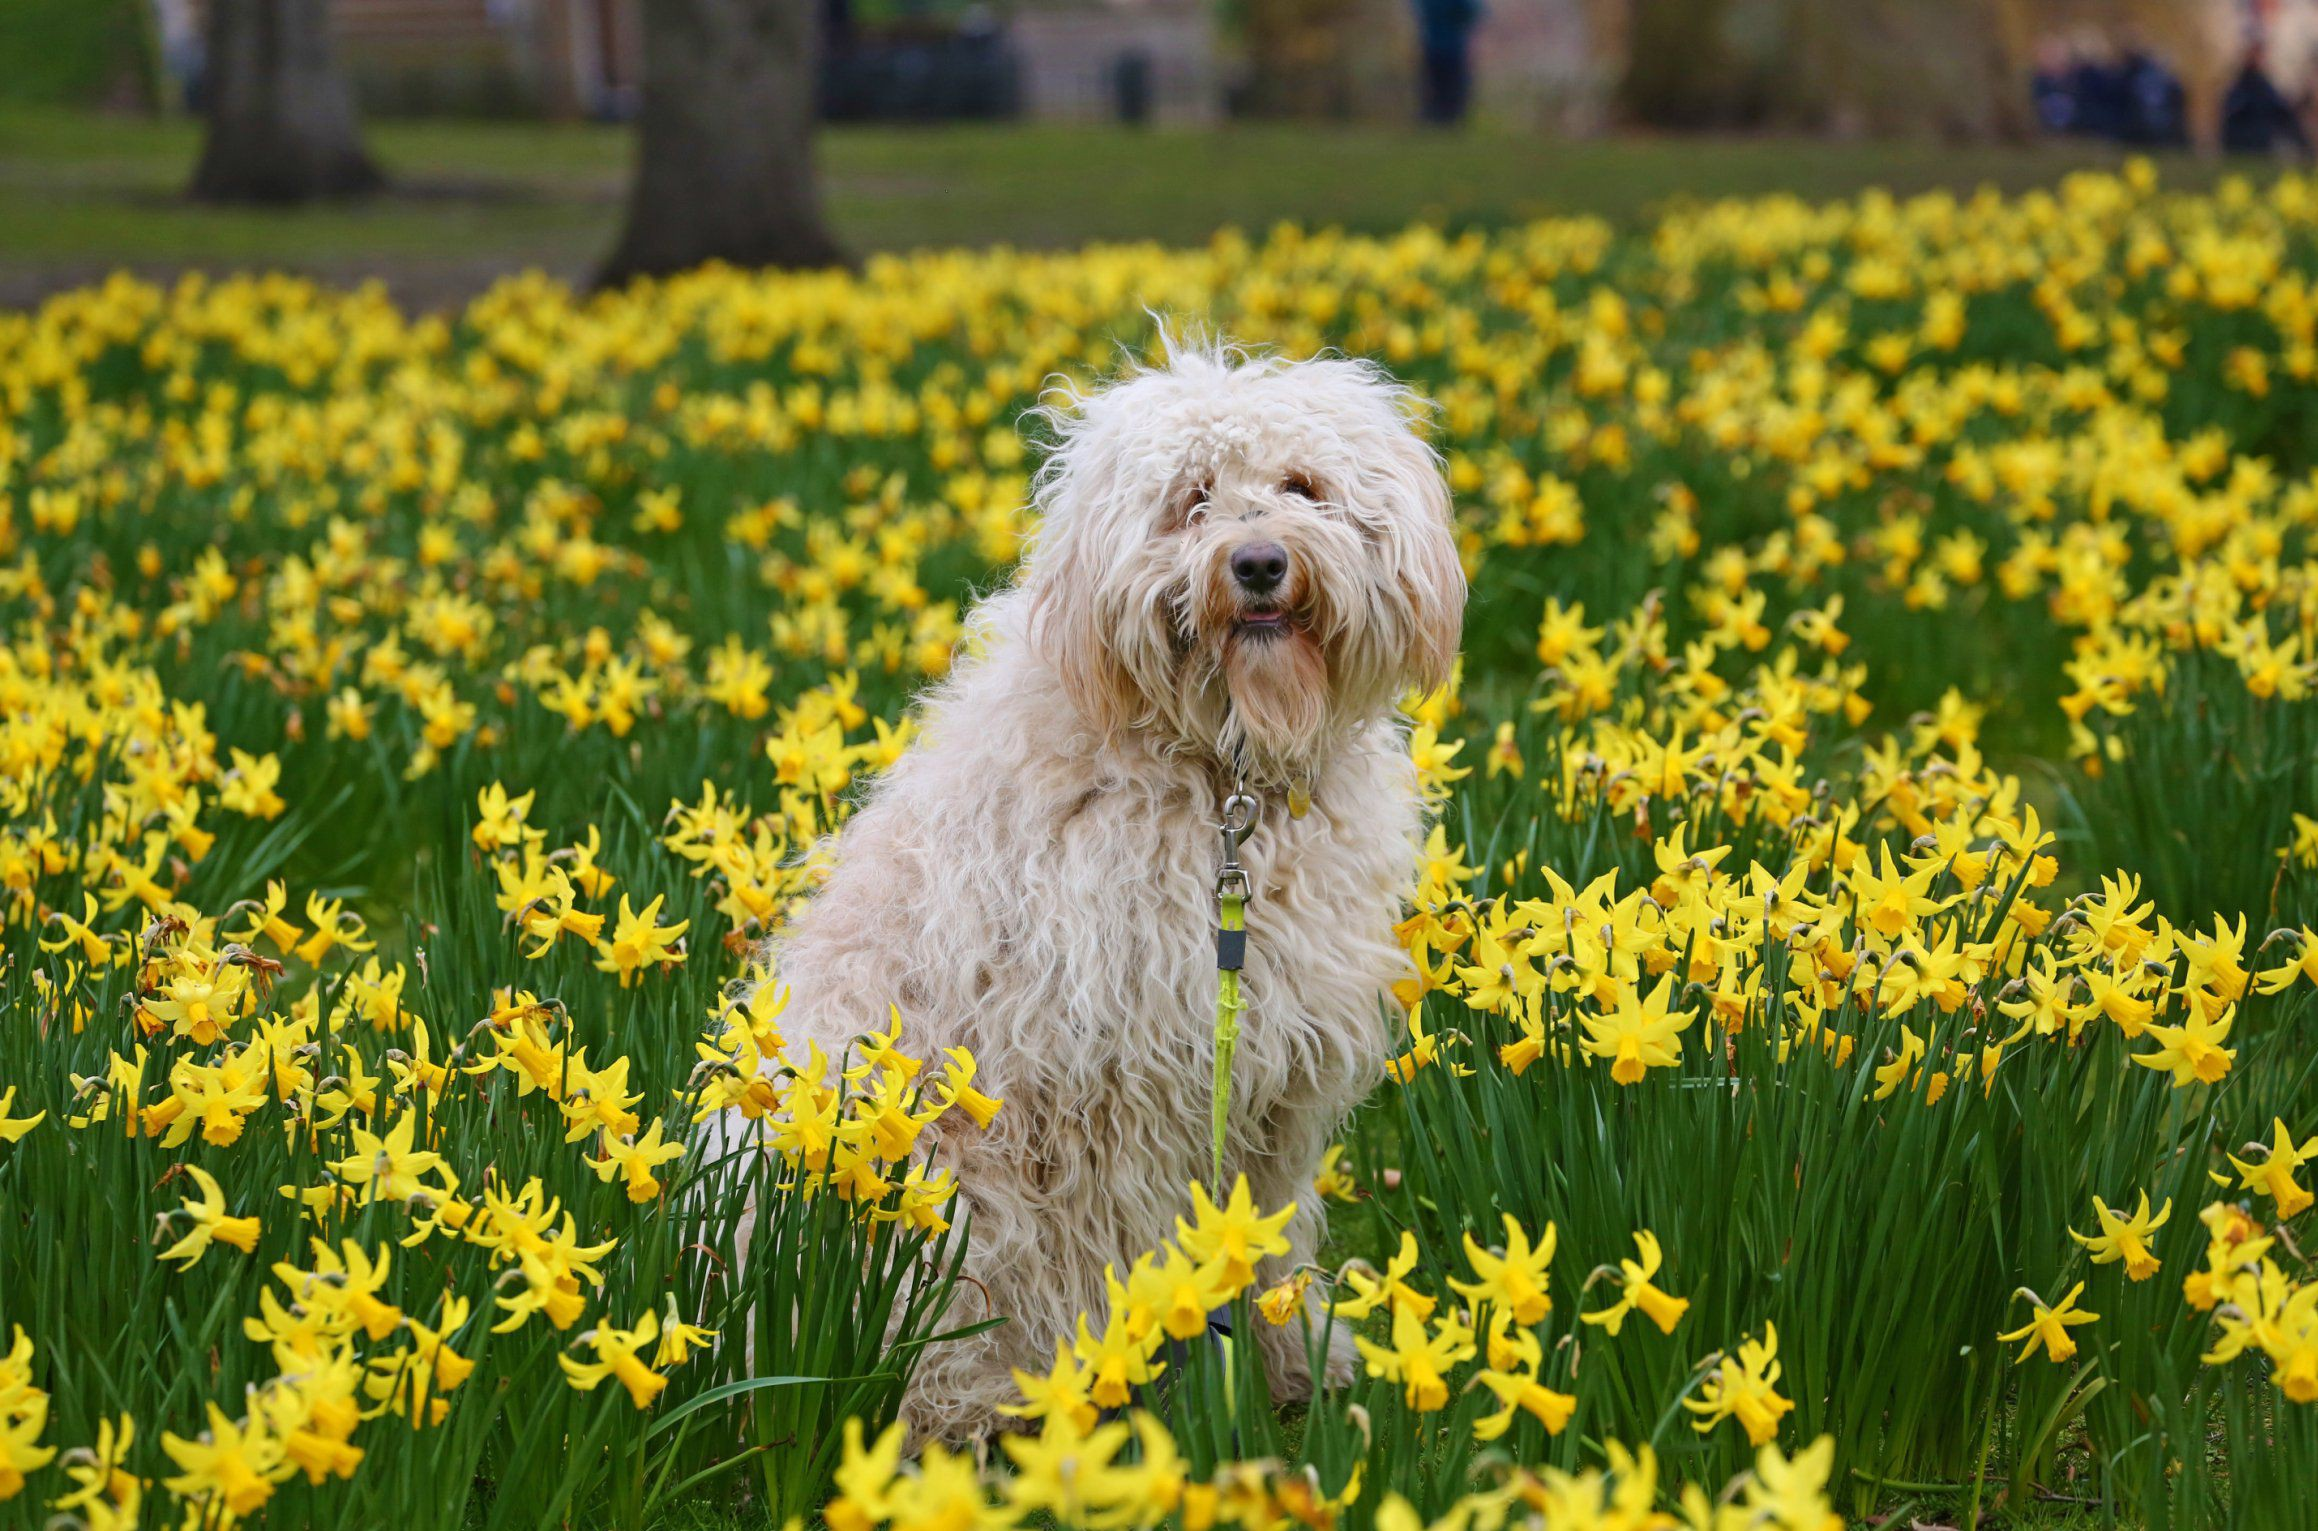 Mandatory Credit: Photo by Paul Brown/REX/Shutterstock (5610010c) Pippi the Goldendoodle enjoys her walk in the Daffodils. Daffodils bloom early in St. James Park, London despite the cold while visitors and locals brave the cold weather to enjoy the colourful flowers. Spring in St. James Park, London, Britain - 6 Mar 2016